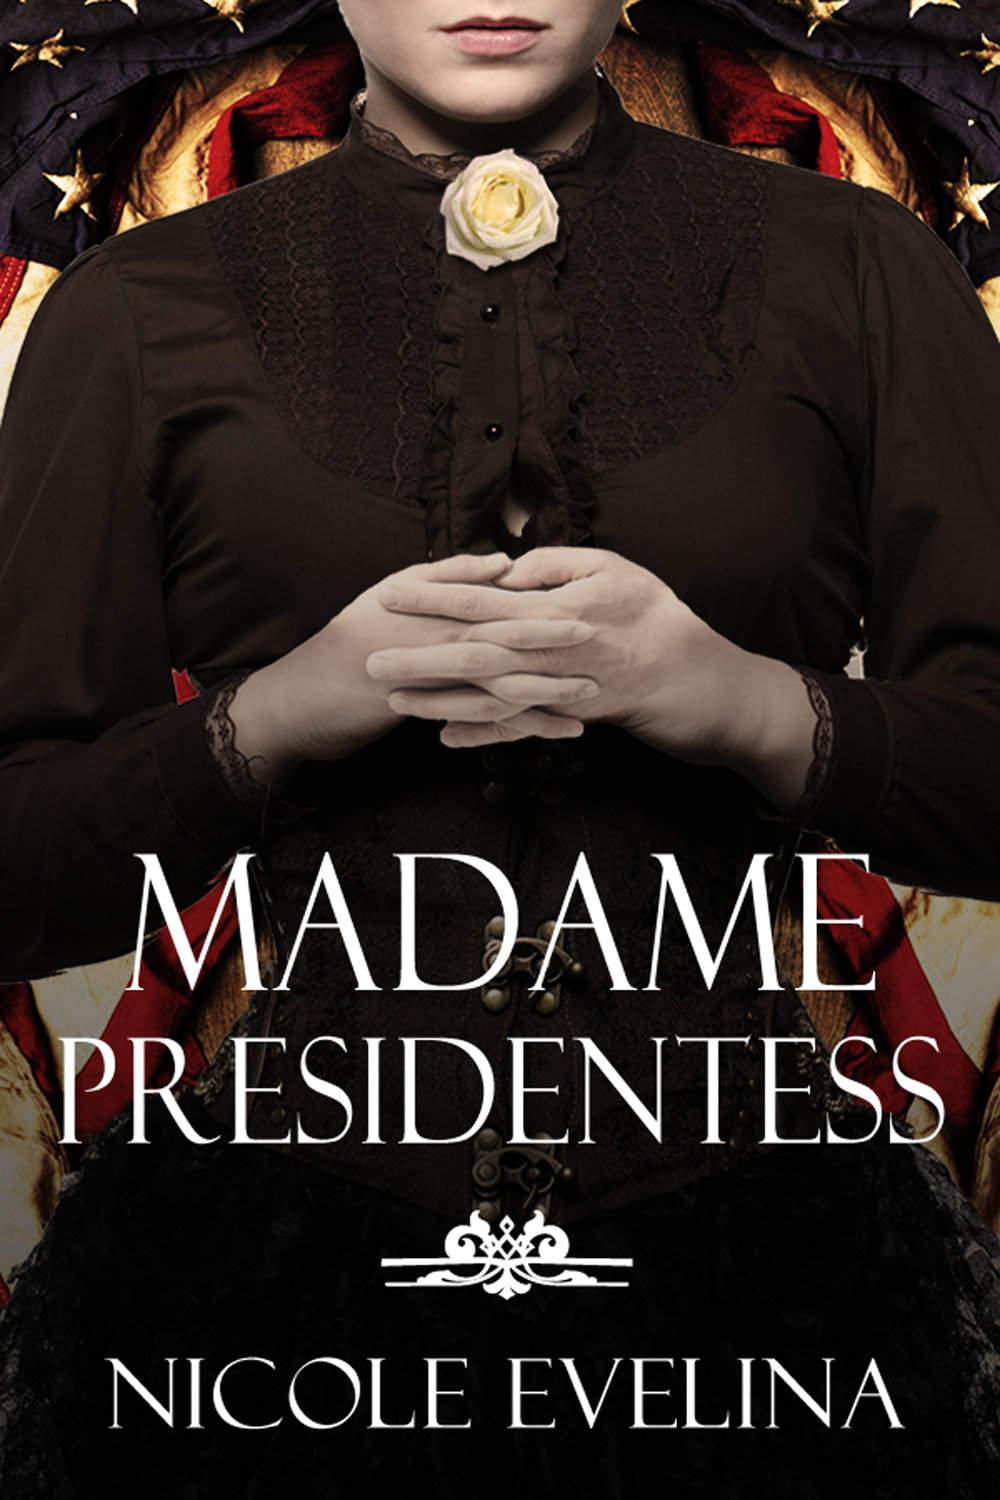 Madame Presidentess eBook Cover.jpeg